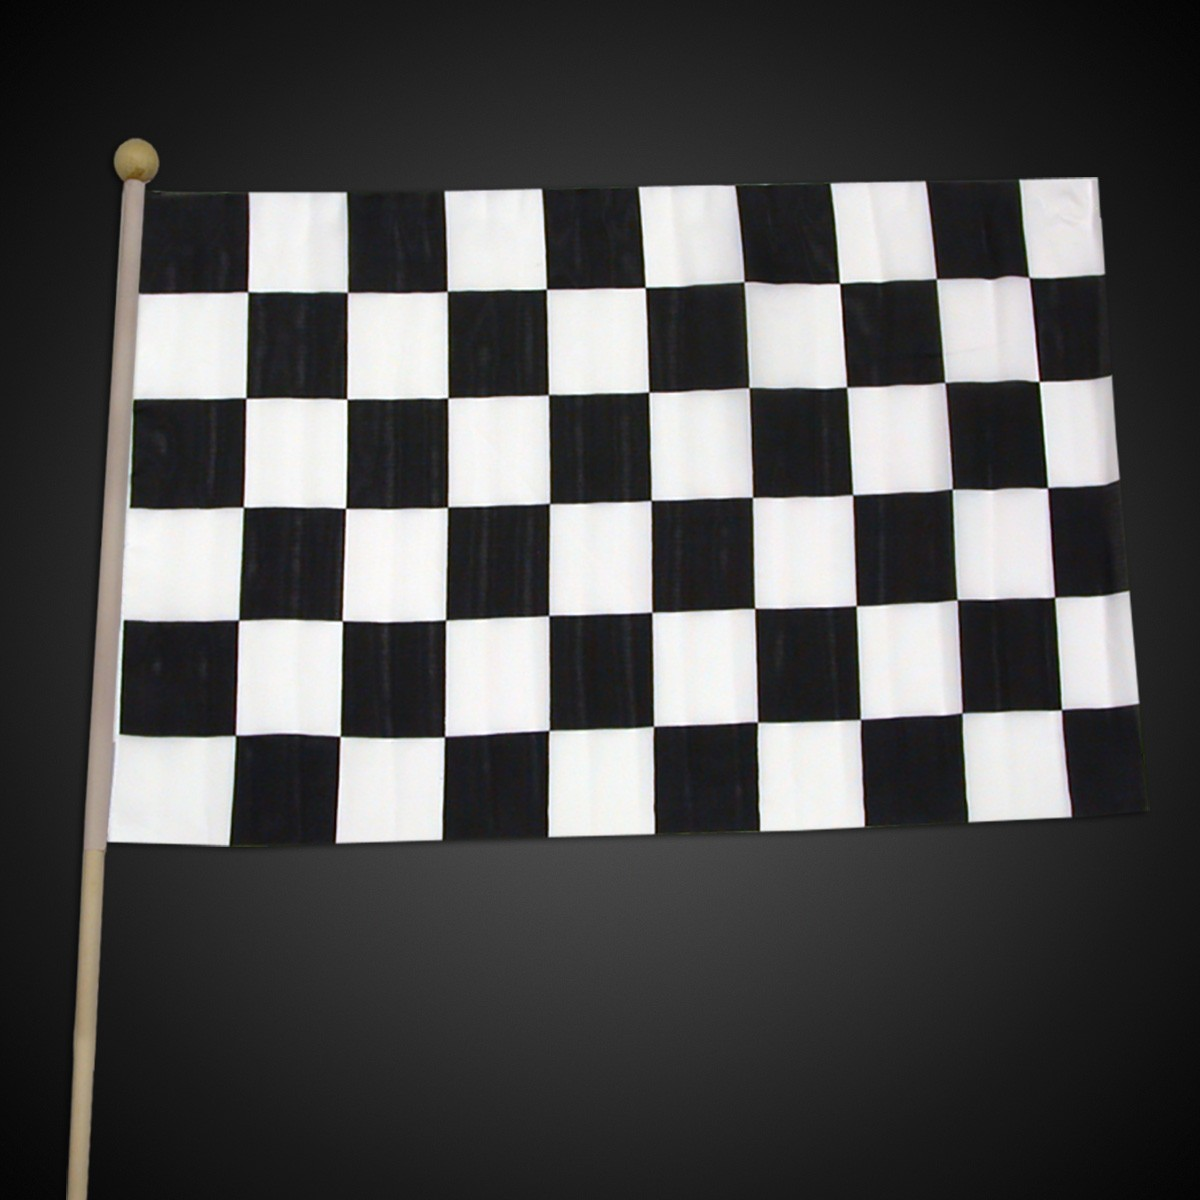 Checkered Race Flag - 12 Inch by 18 Inch